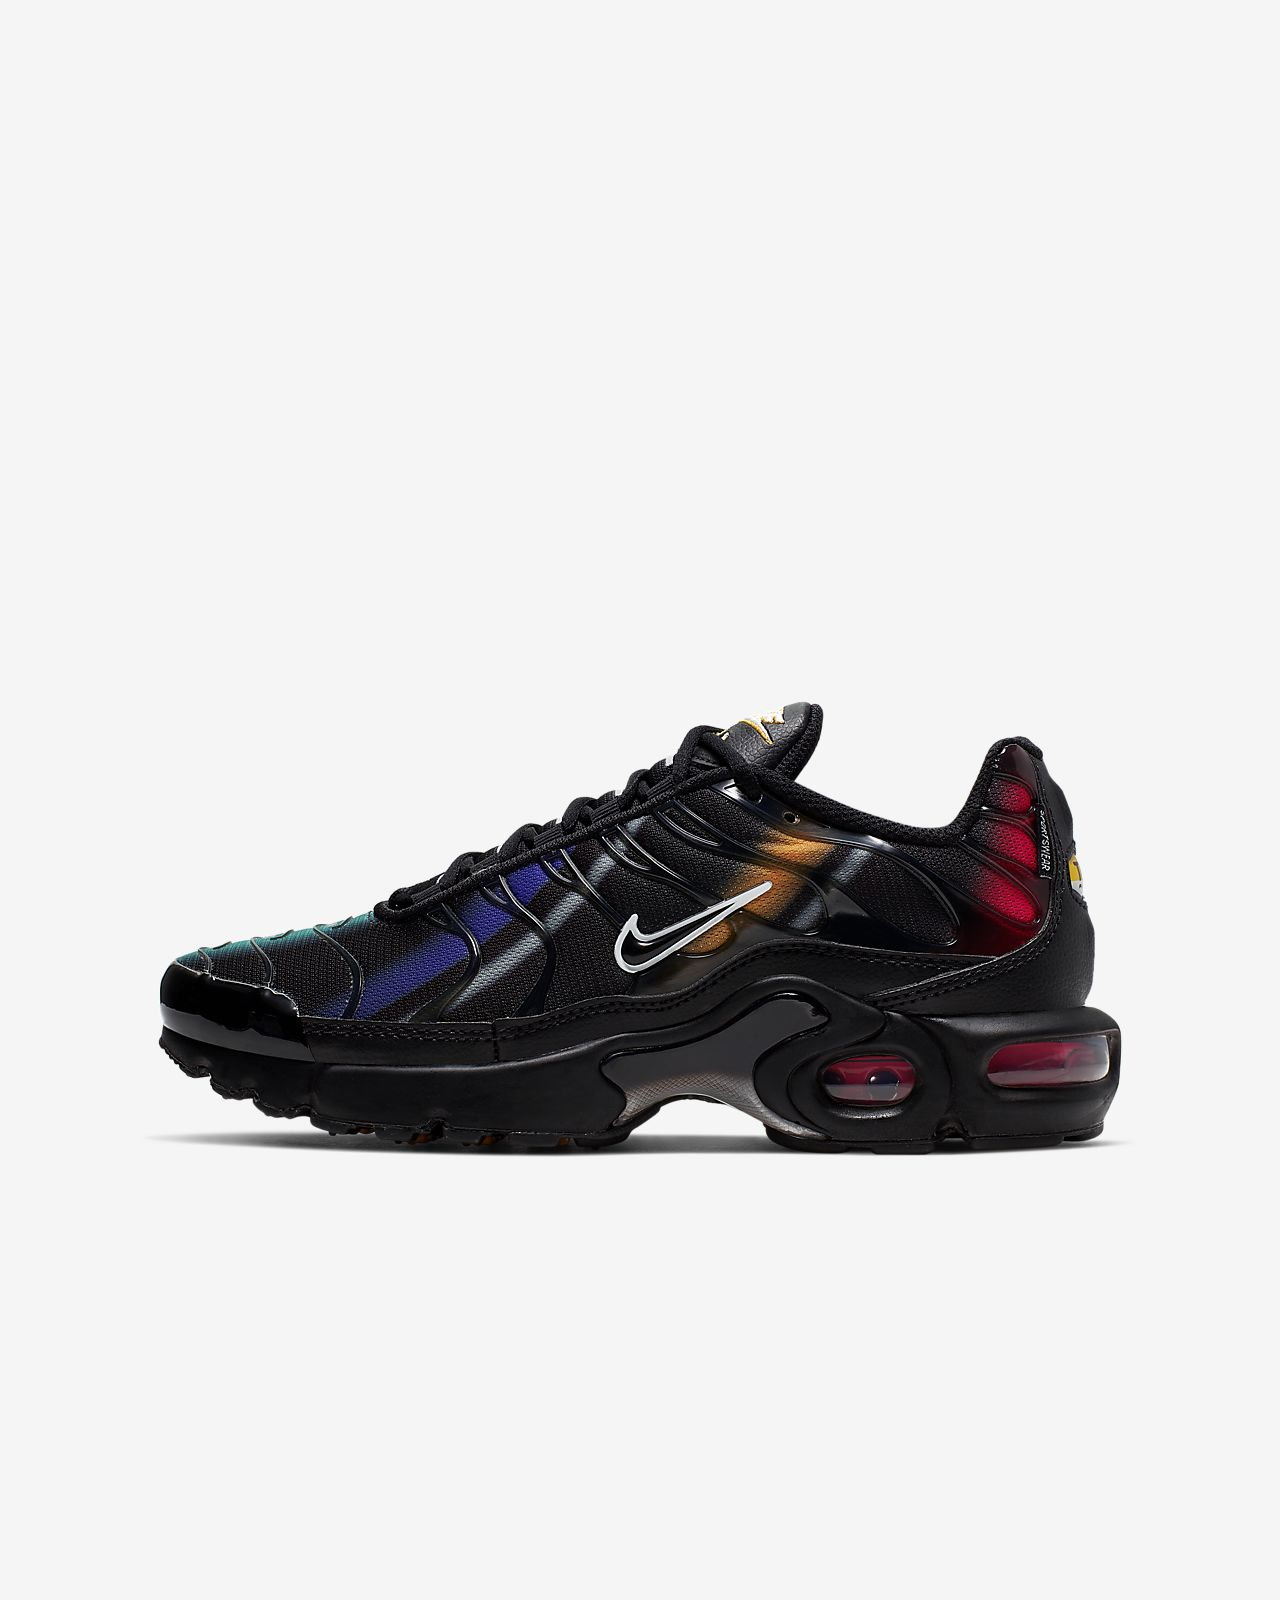 Sapatilhas Nike Air Max Plus Game Júnior